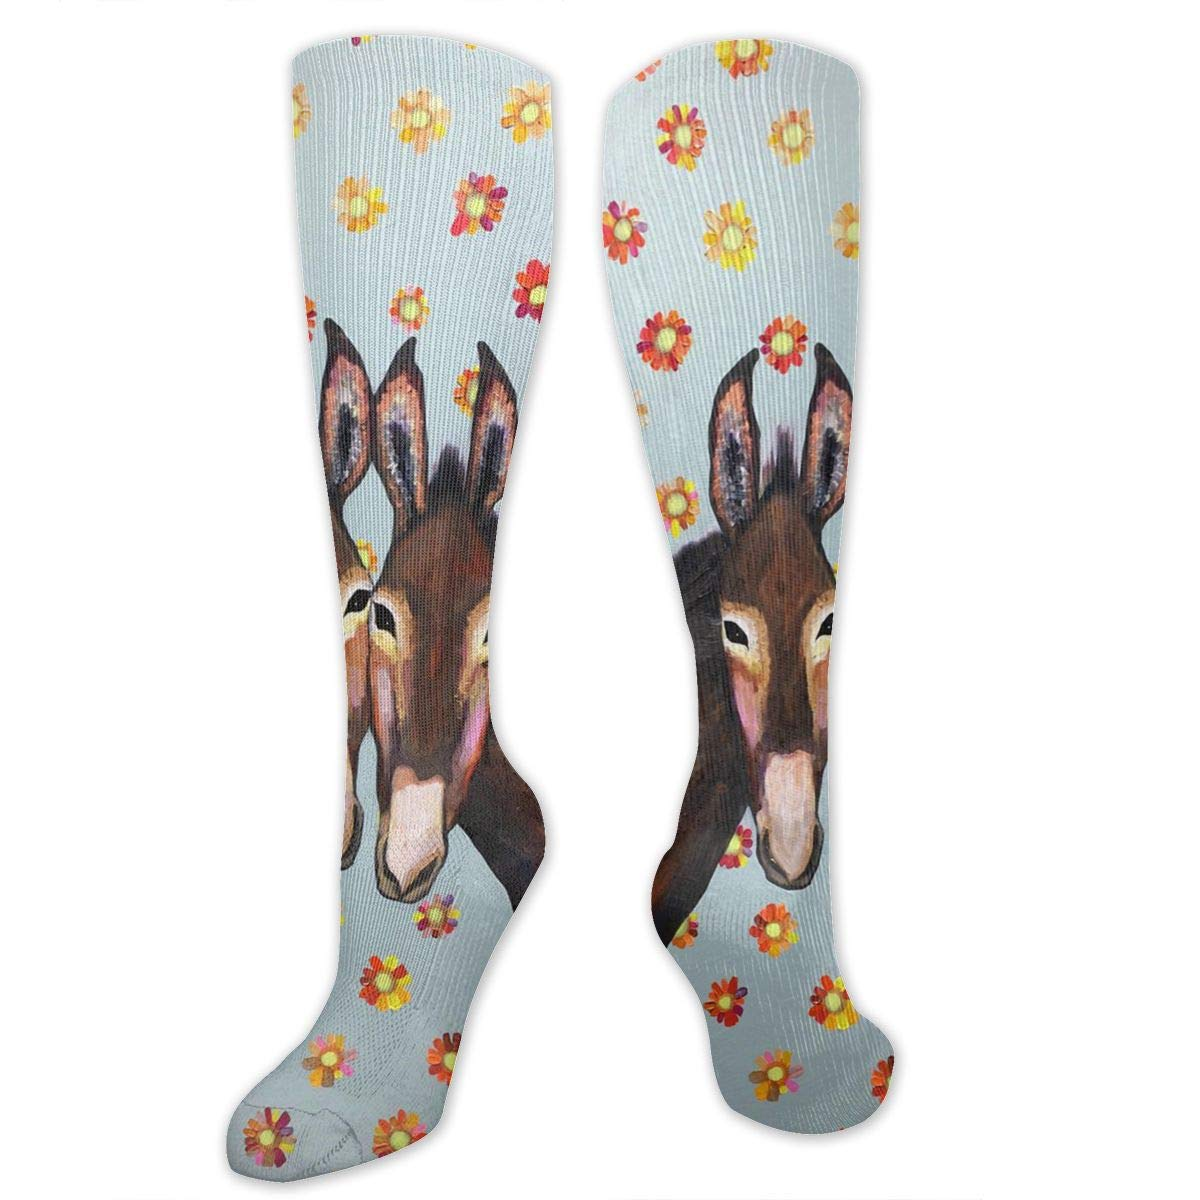 Donkey Love Oil Painting Mens Teens Colorful Funky Socks Cotton Fashion Patterned Socks Fun Dress Socks for Men